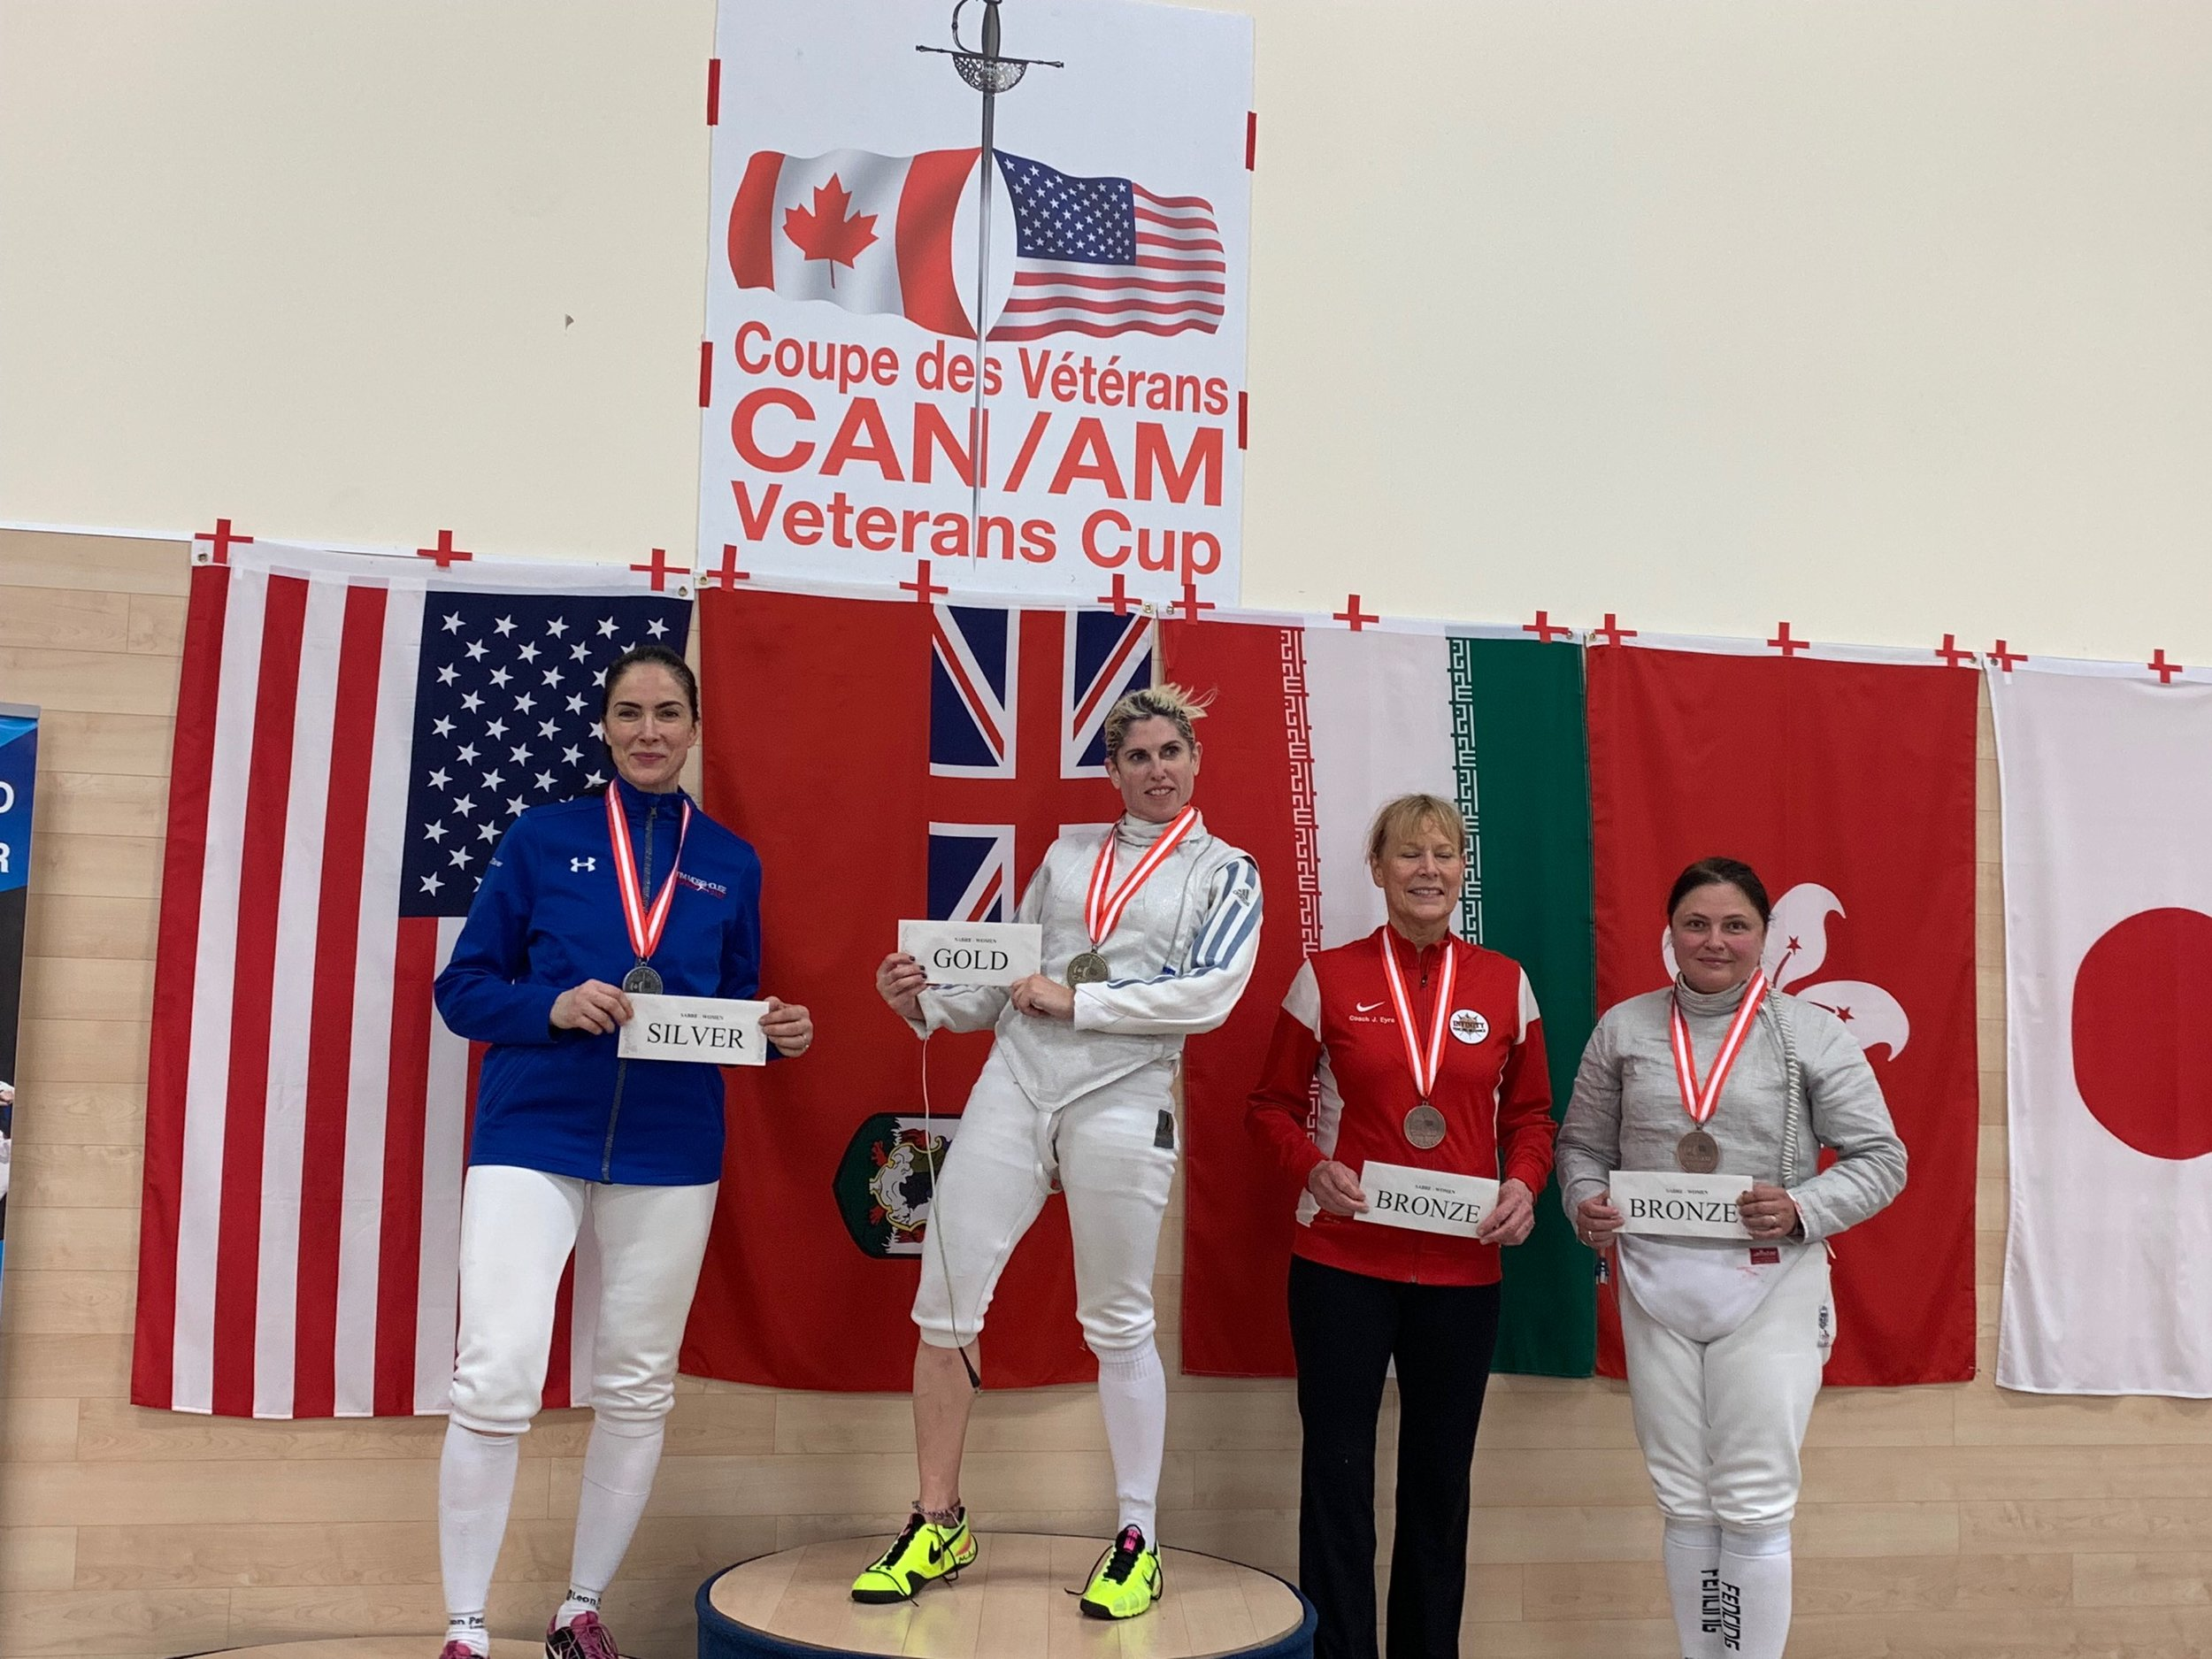 Pictured: Jasmina Denner wins one of her two Silver Medals at the Can/Am Veteran's Cup 2019